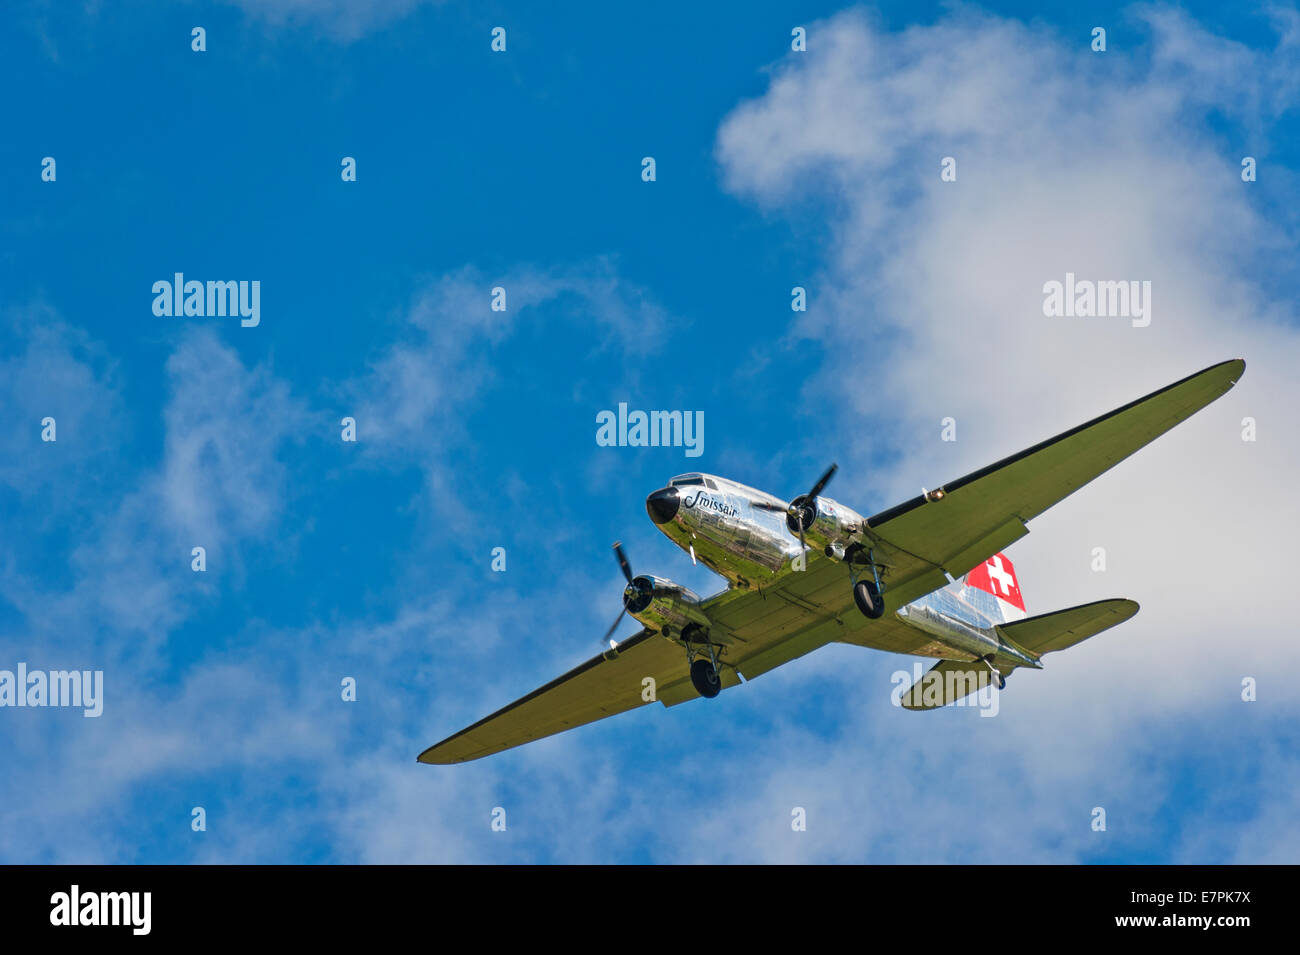 A vintage Douglas DC-3 (Dakota) aircraft of Swissair, coming in to land Stock Photo